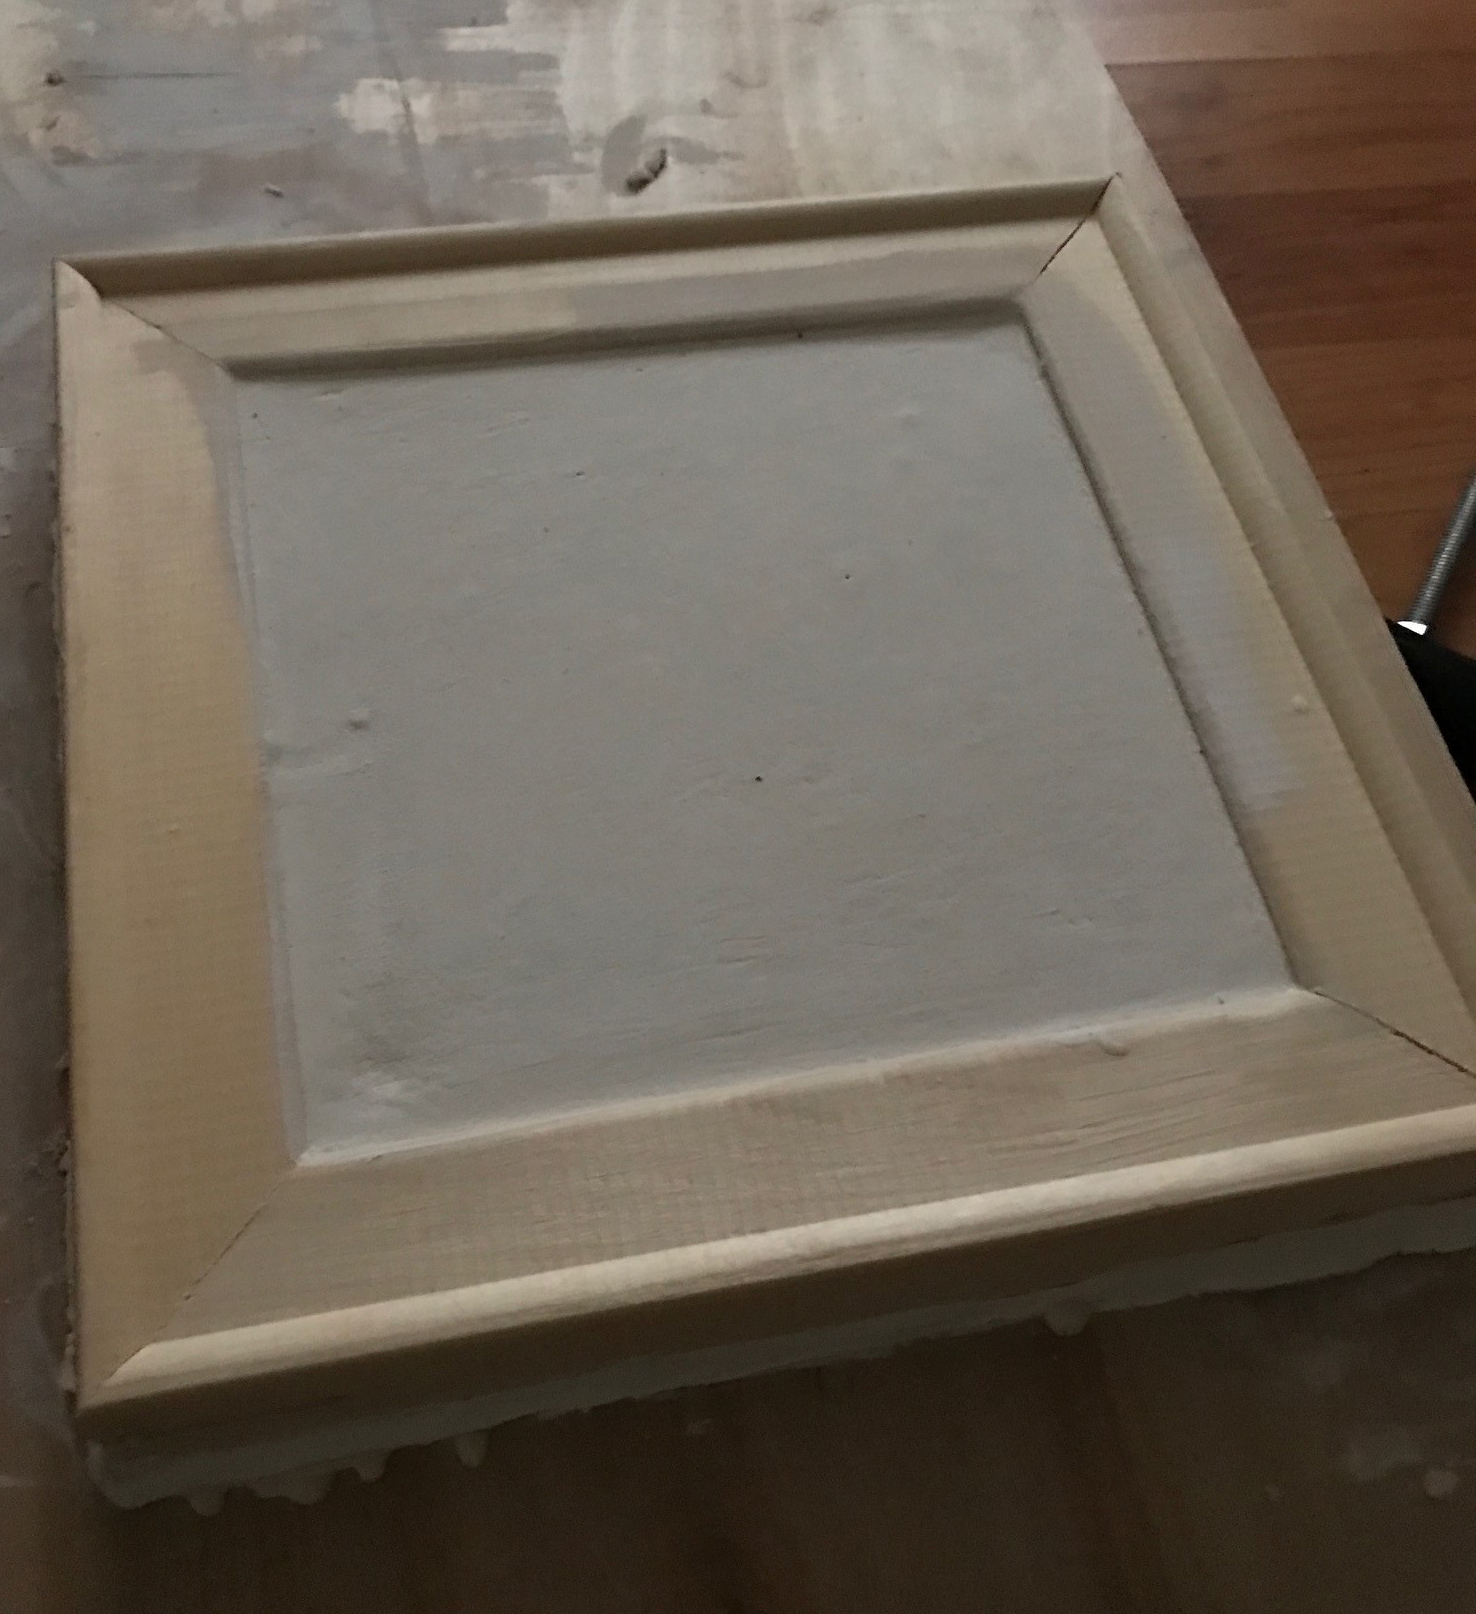 Gypsum Plaster Of Paris : Plaster of paris gypsum powder projects inventables